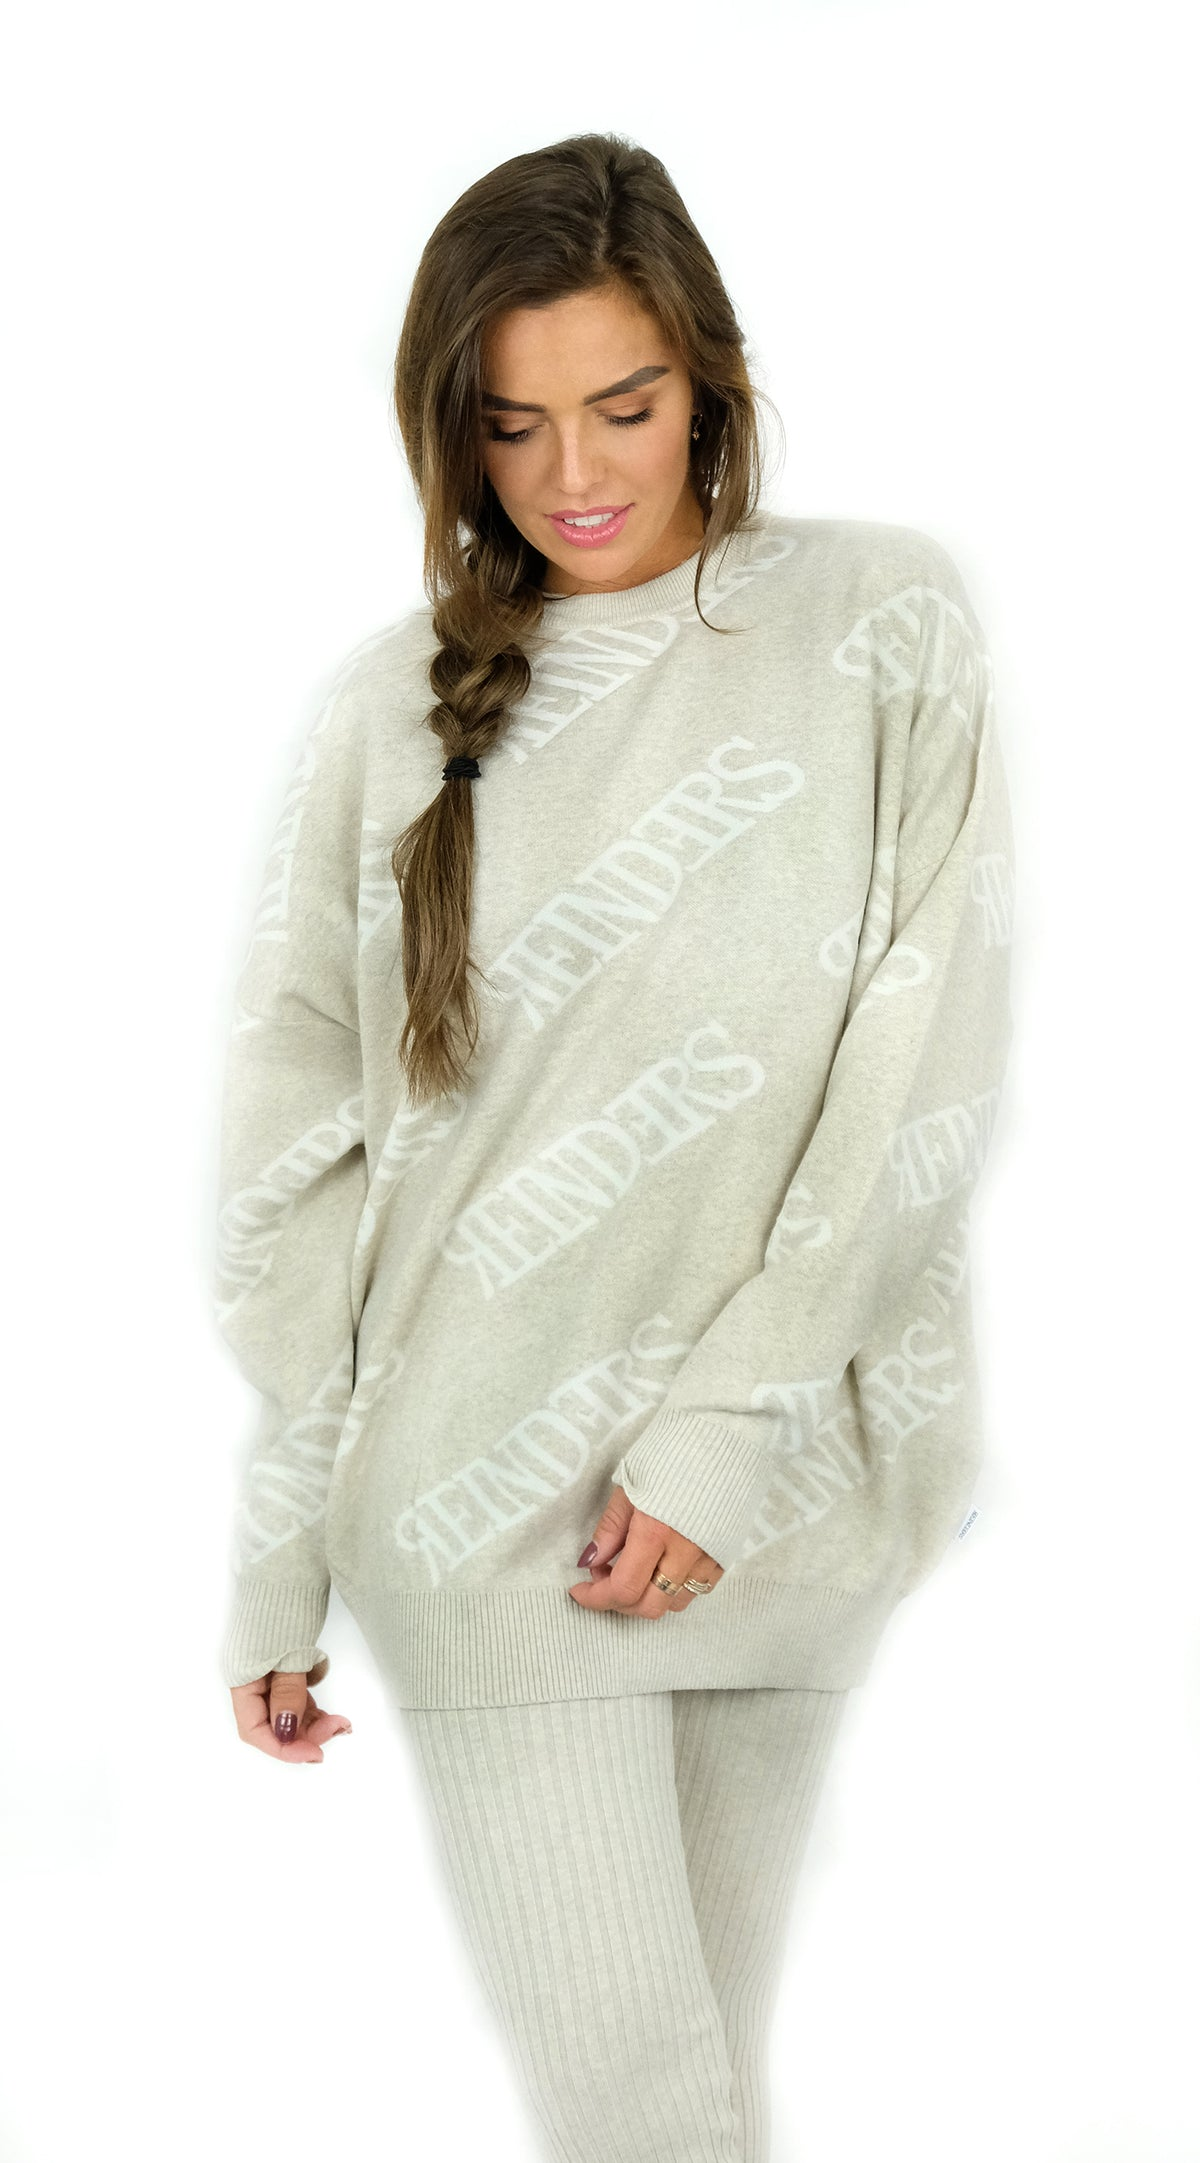 BUYLAU | REINDERS | Reinders Sweater Roundneck All Over Creme